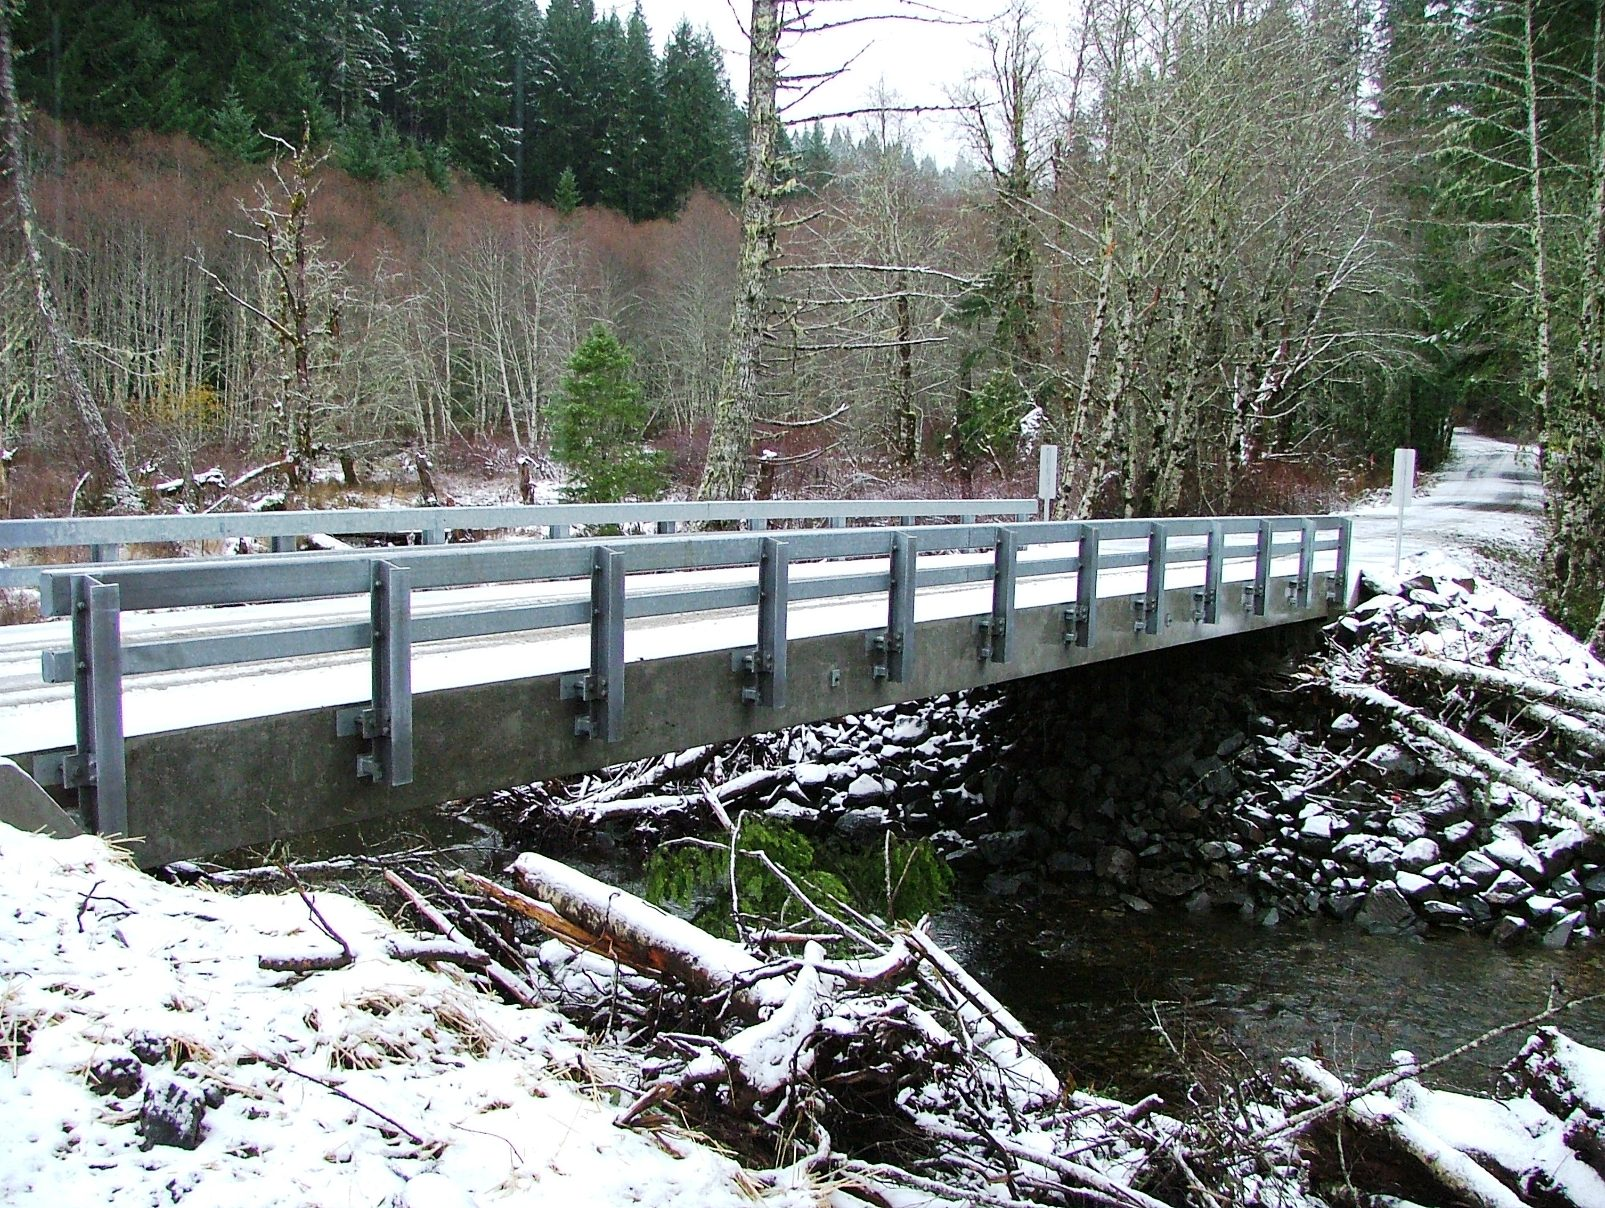 Nestucca River Bridge